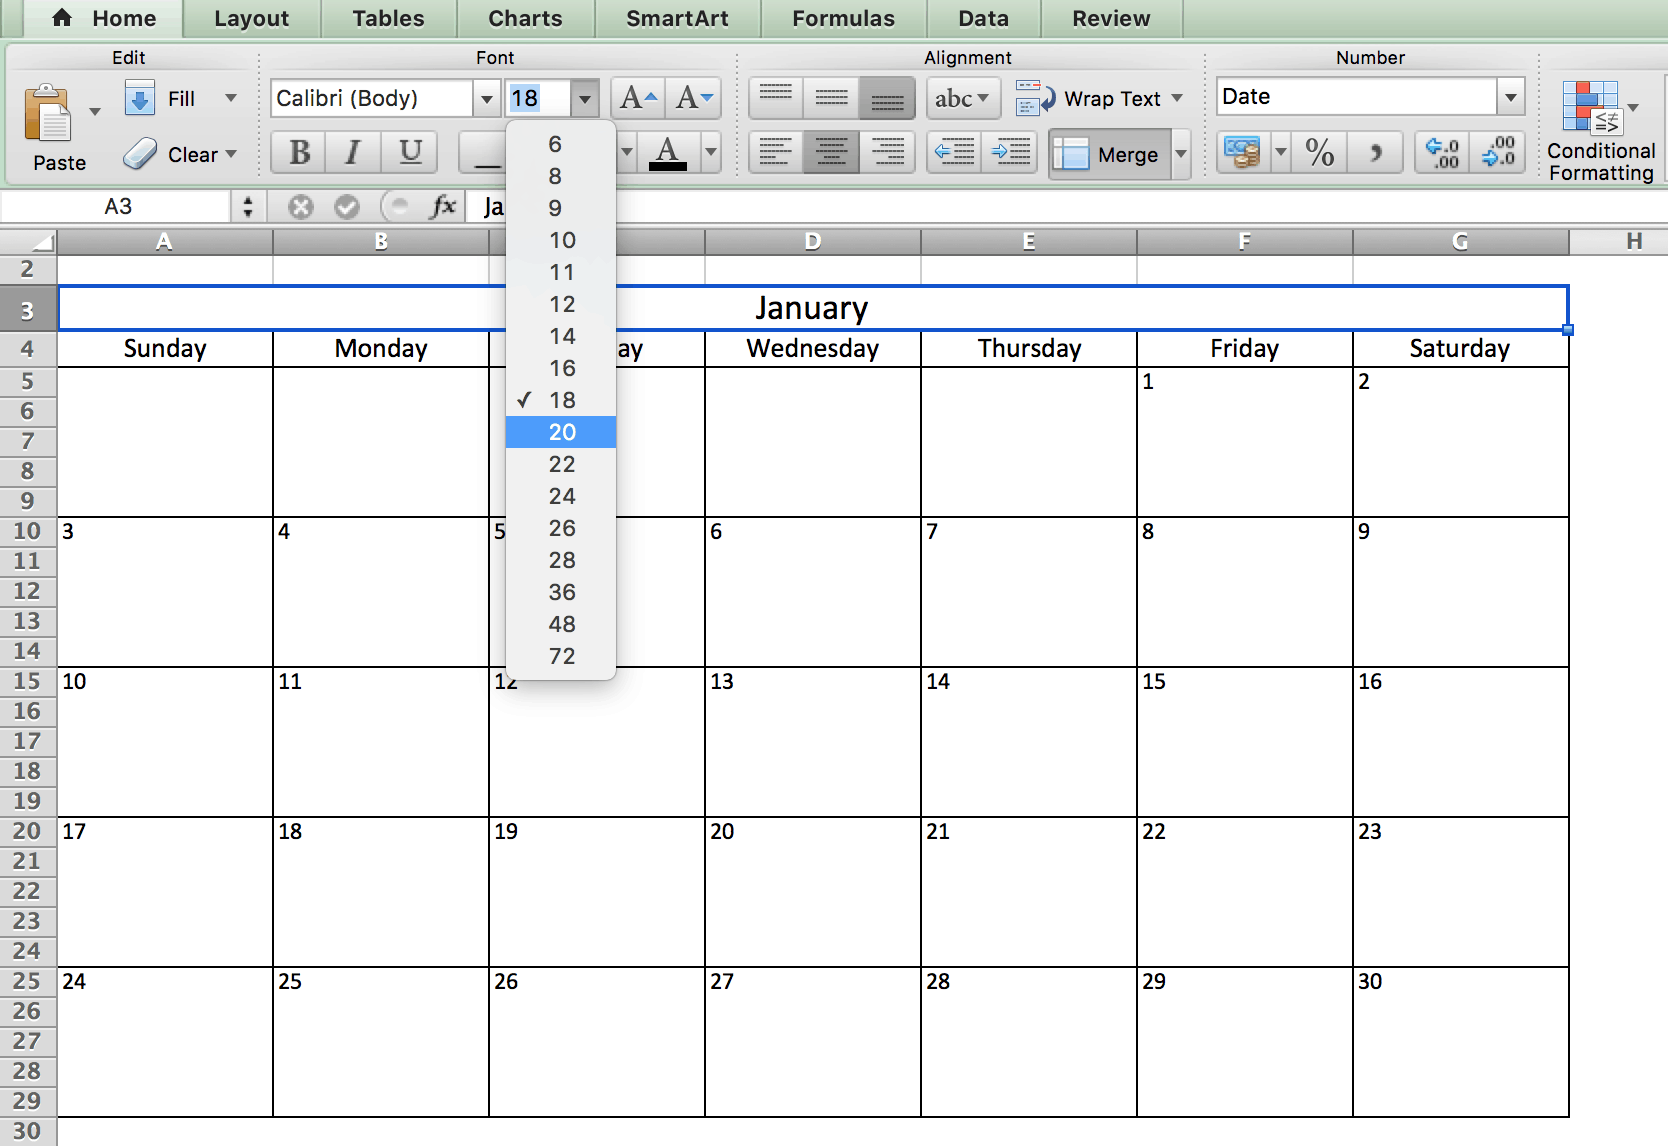 Excel Calendar Planner Template : Make a calendar in excel includes free template